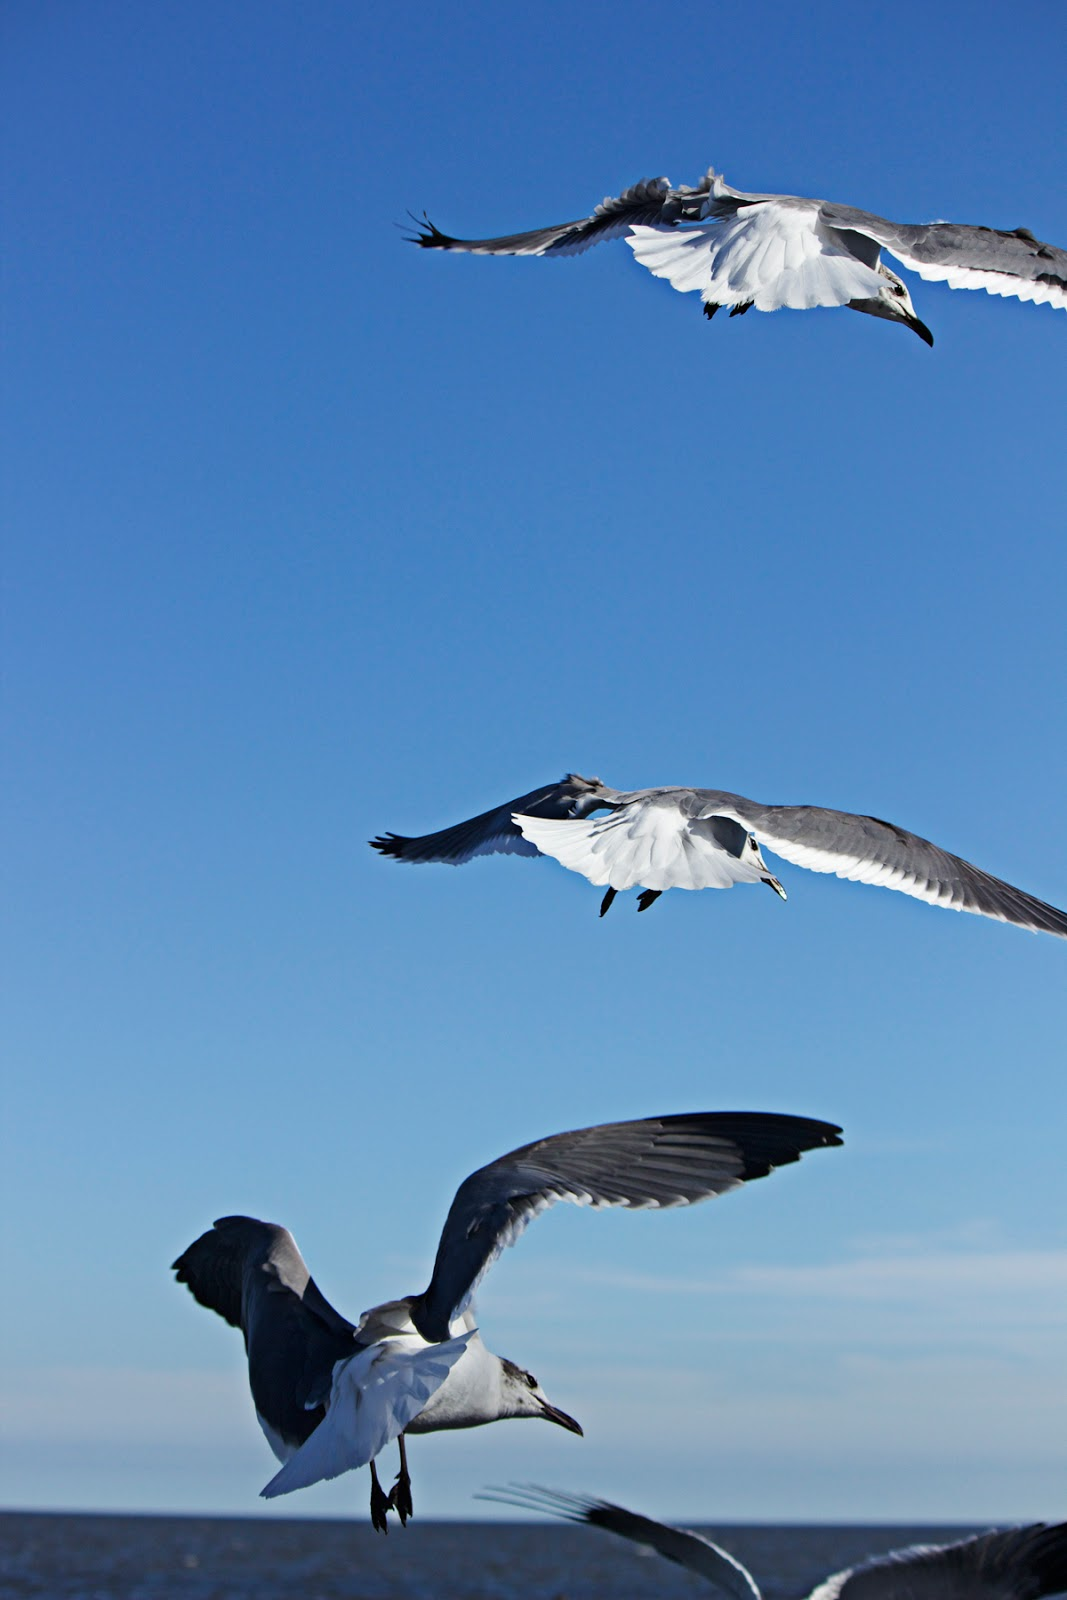 seagulls flying above